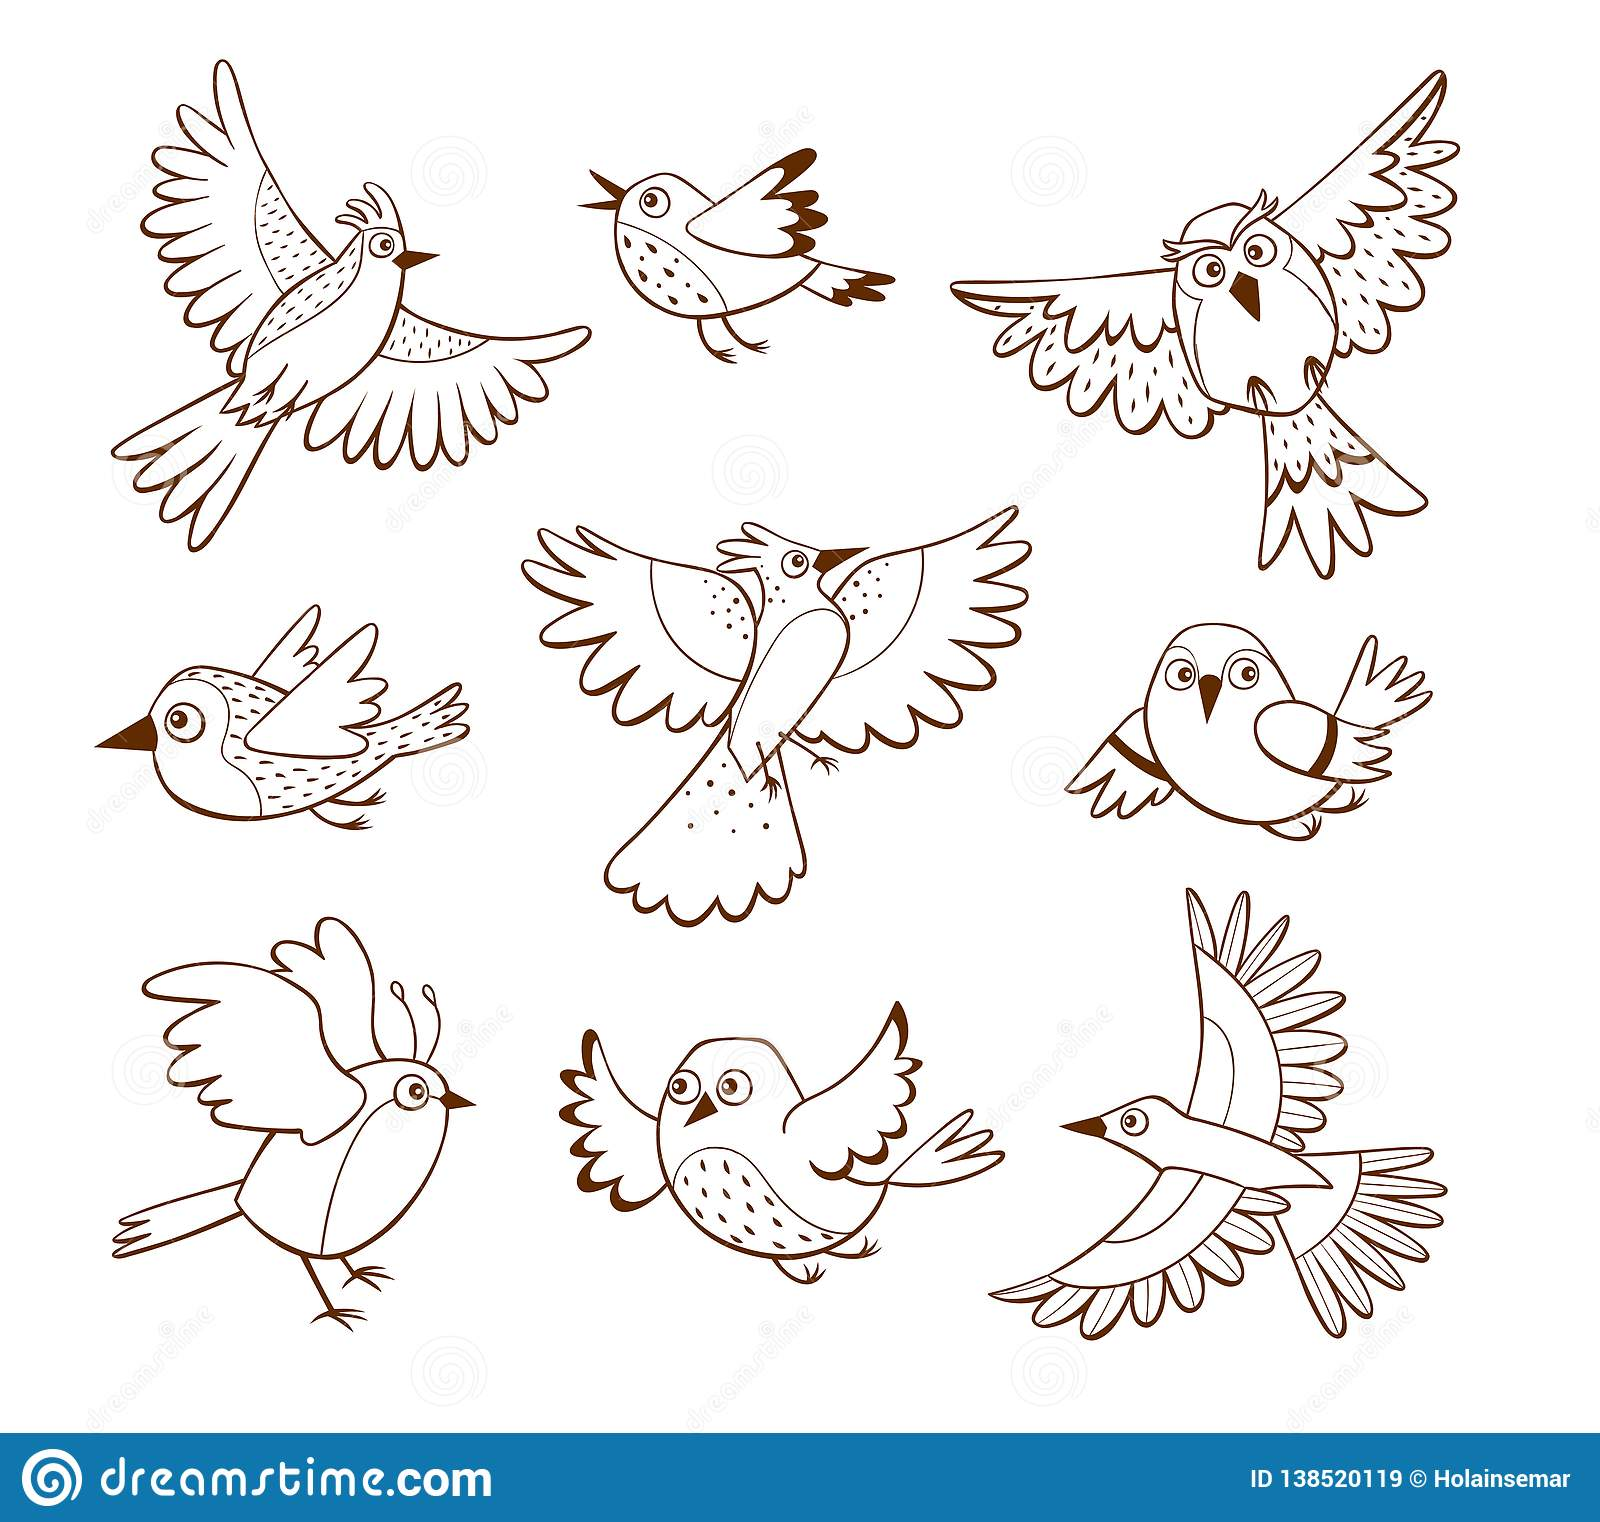 Hand drawn flying bird collection